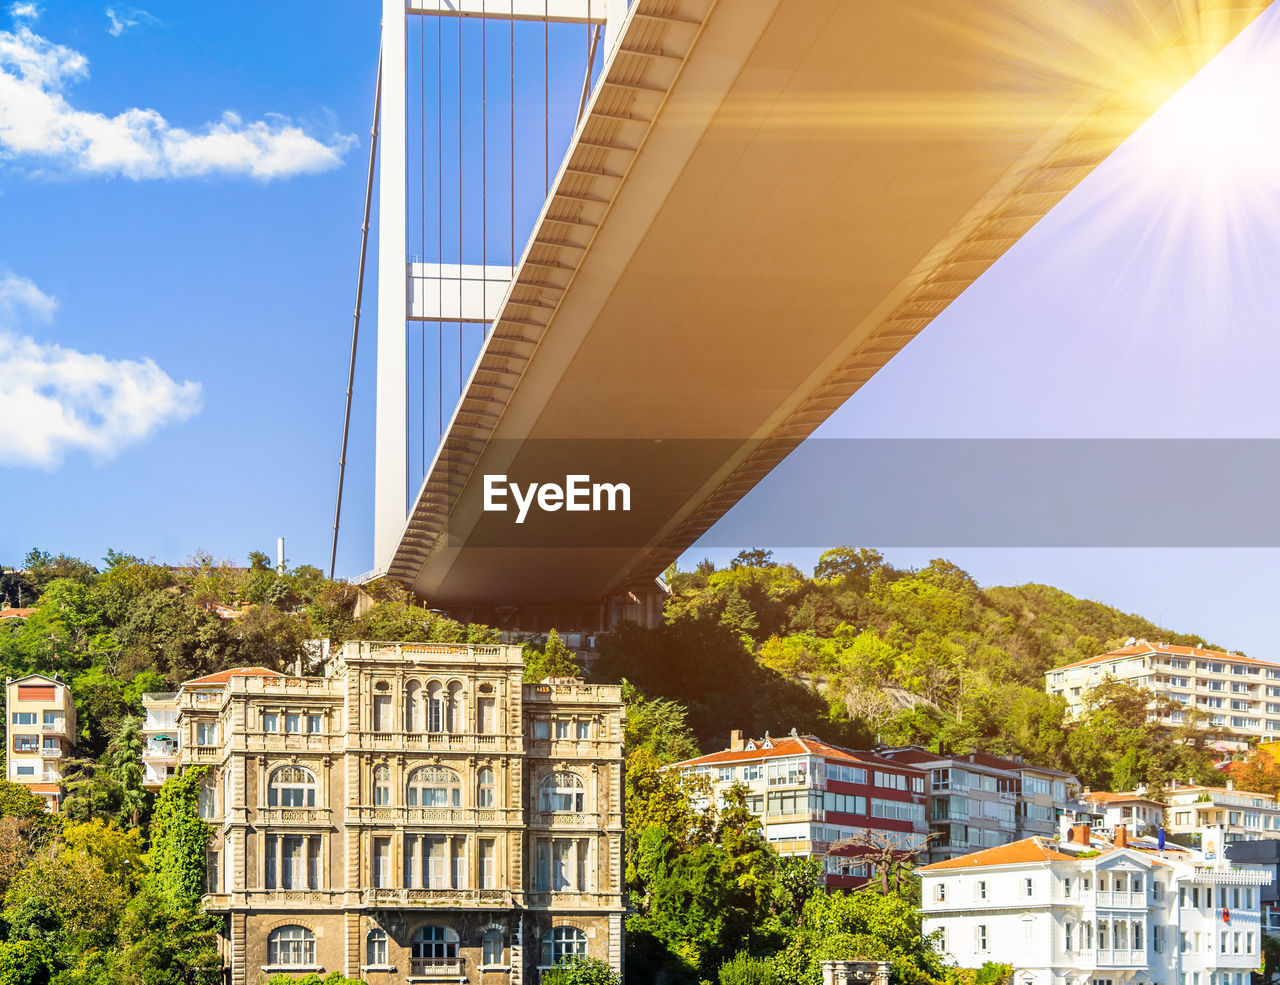 LOW ANGLE VIEW OF BRIDGE BY BUILDINGS AGAINST SKY